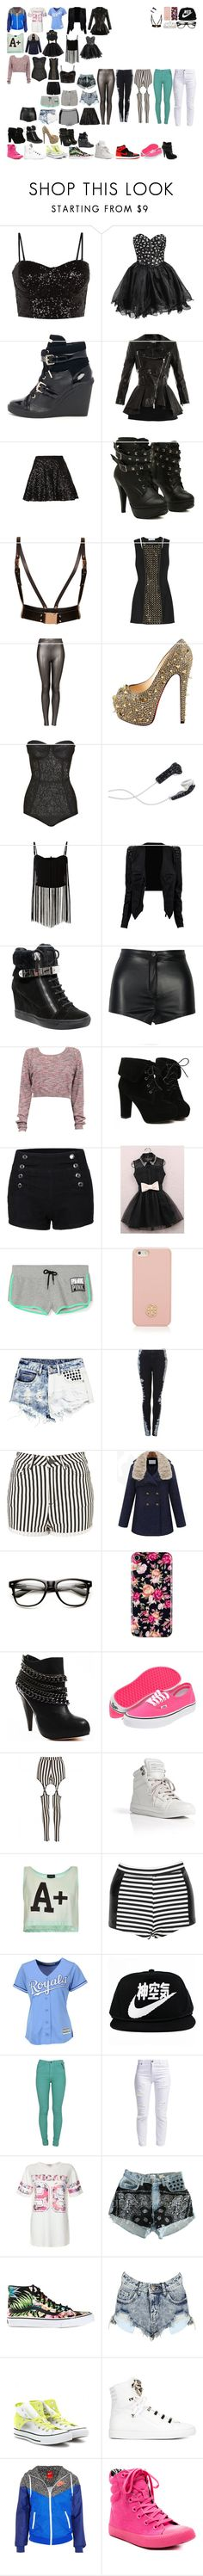 """Packing for the Academy"" by royalsinthedark ❤ liked on Polyvore featuring FairOnly, MICHAEL Michael Kors, Alexander McQueen, TFNC, Topshop, Pierre Balmain, Christian Louboutin, DEOS, AX Paris and Giuseppe Zanotti"